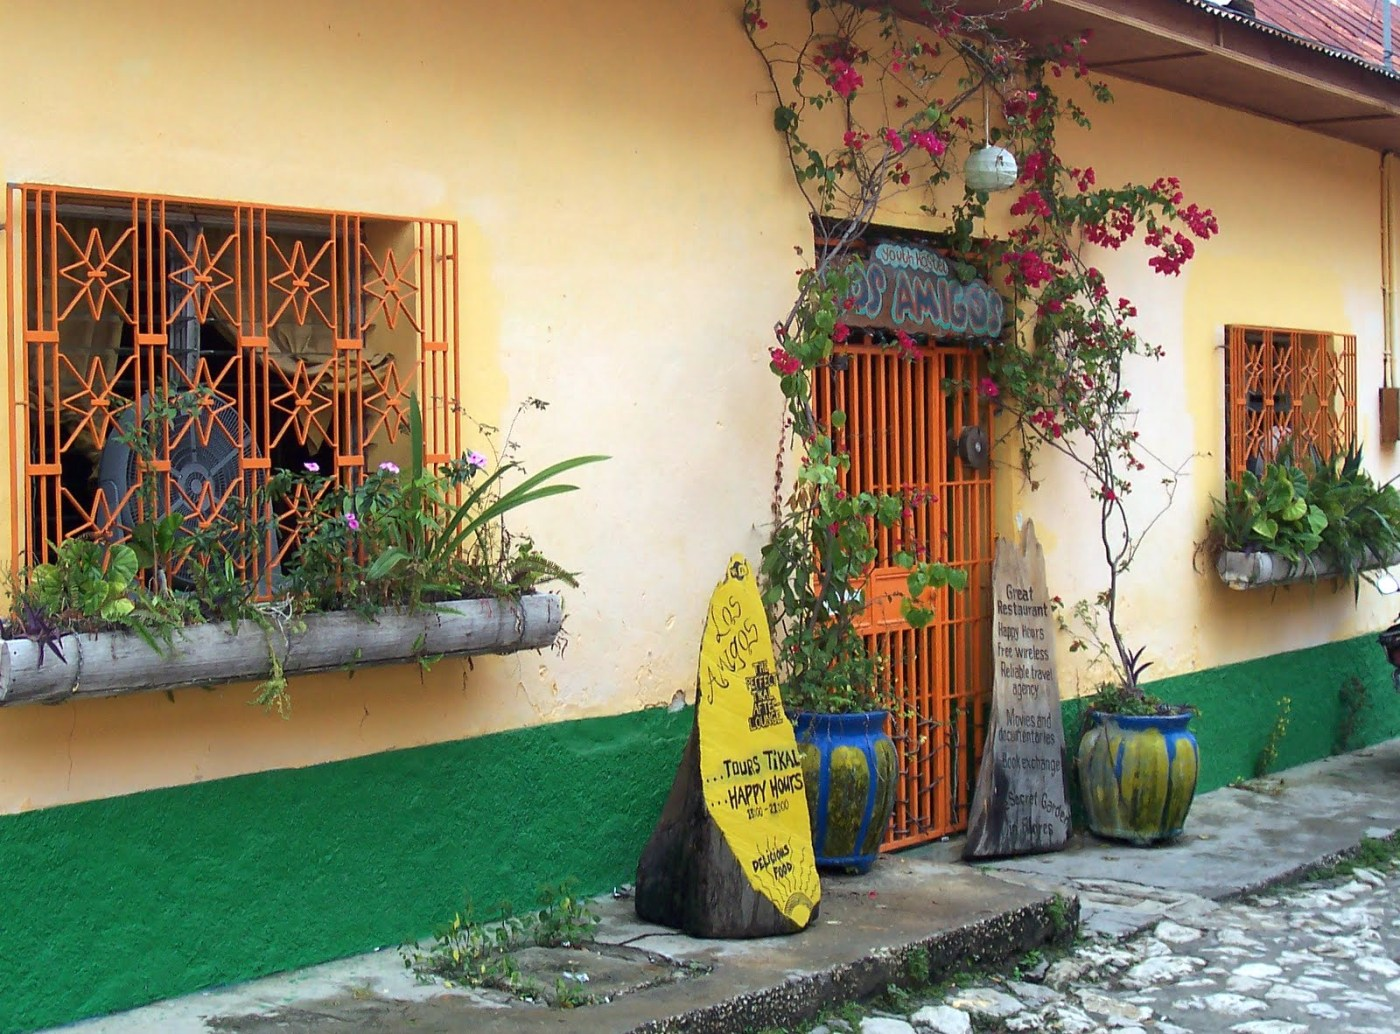 An image of a restaurant in Flores, Guatemala, which is a quick drive from Belize City